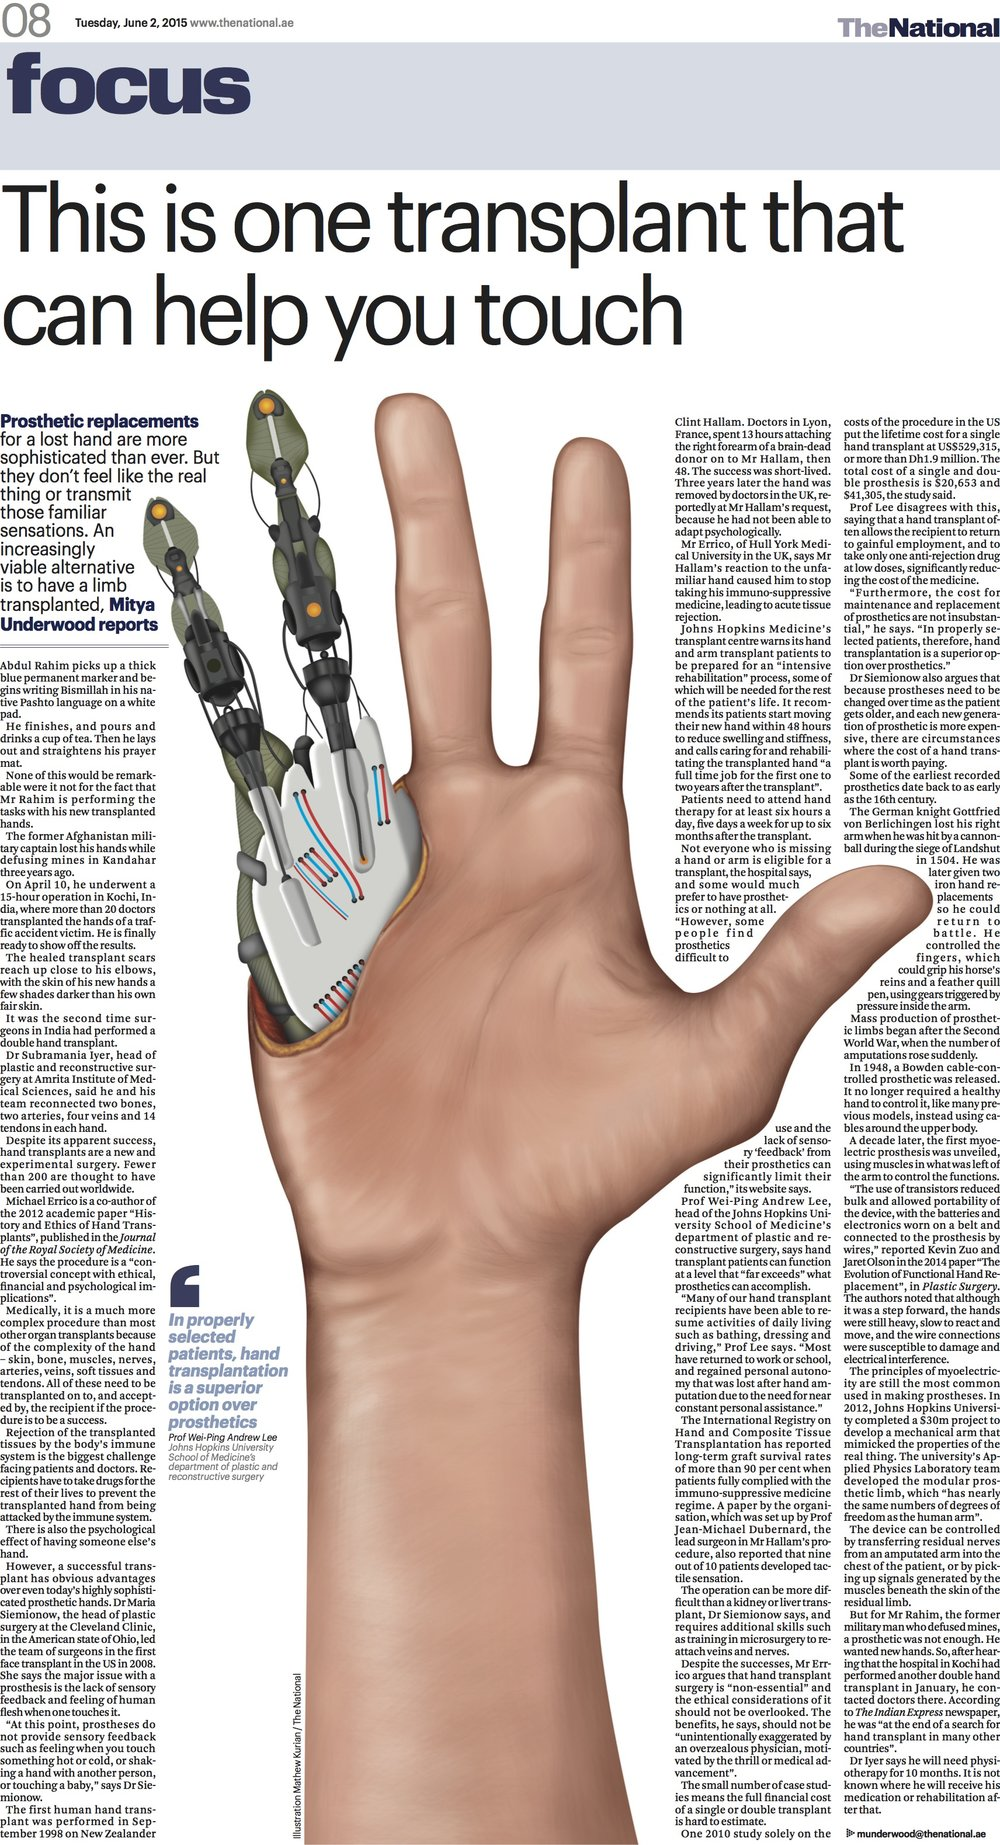 Prosthetic replacements for a lost hand are more sophisticated than ever. but they don't feel like the real thing or transmit familiar sensations